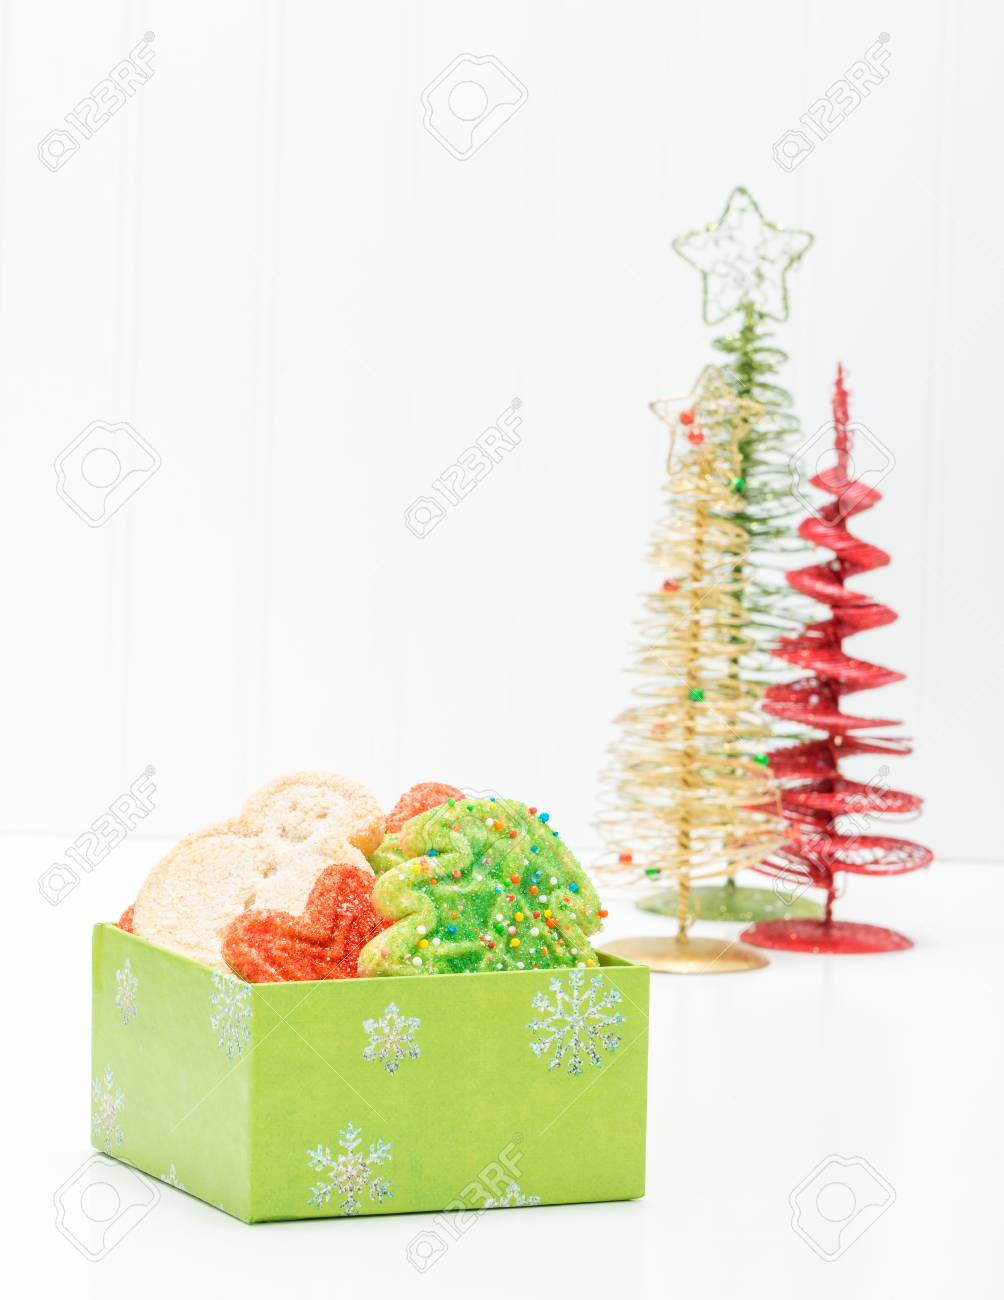 Gift Box Filled With A Variety Of Festive Christmas Sugar Cookies